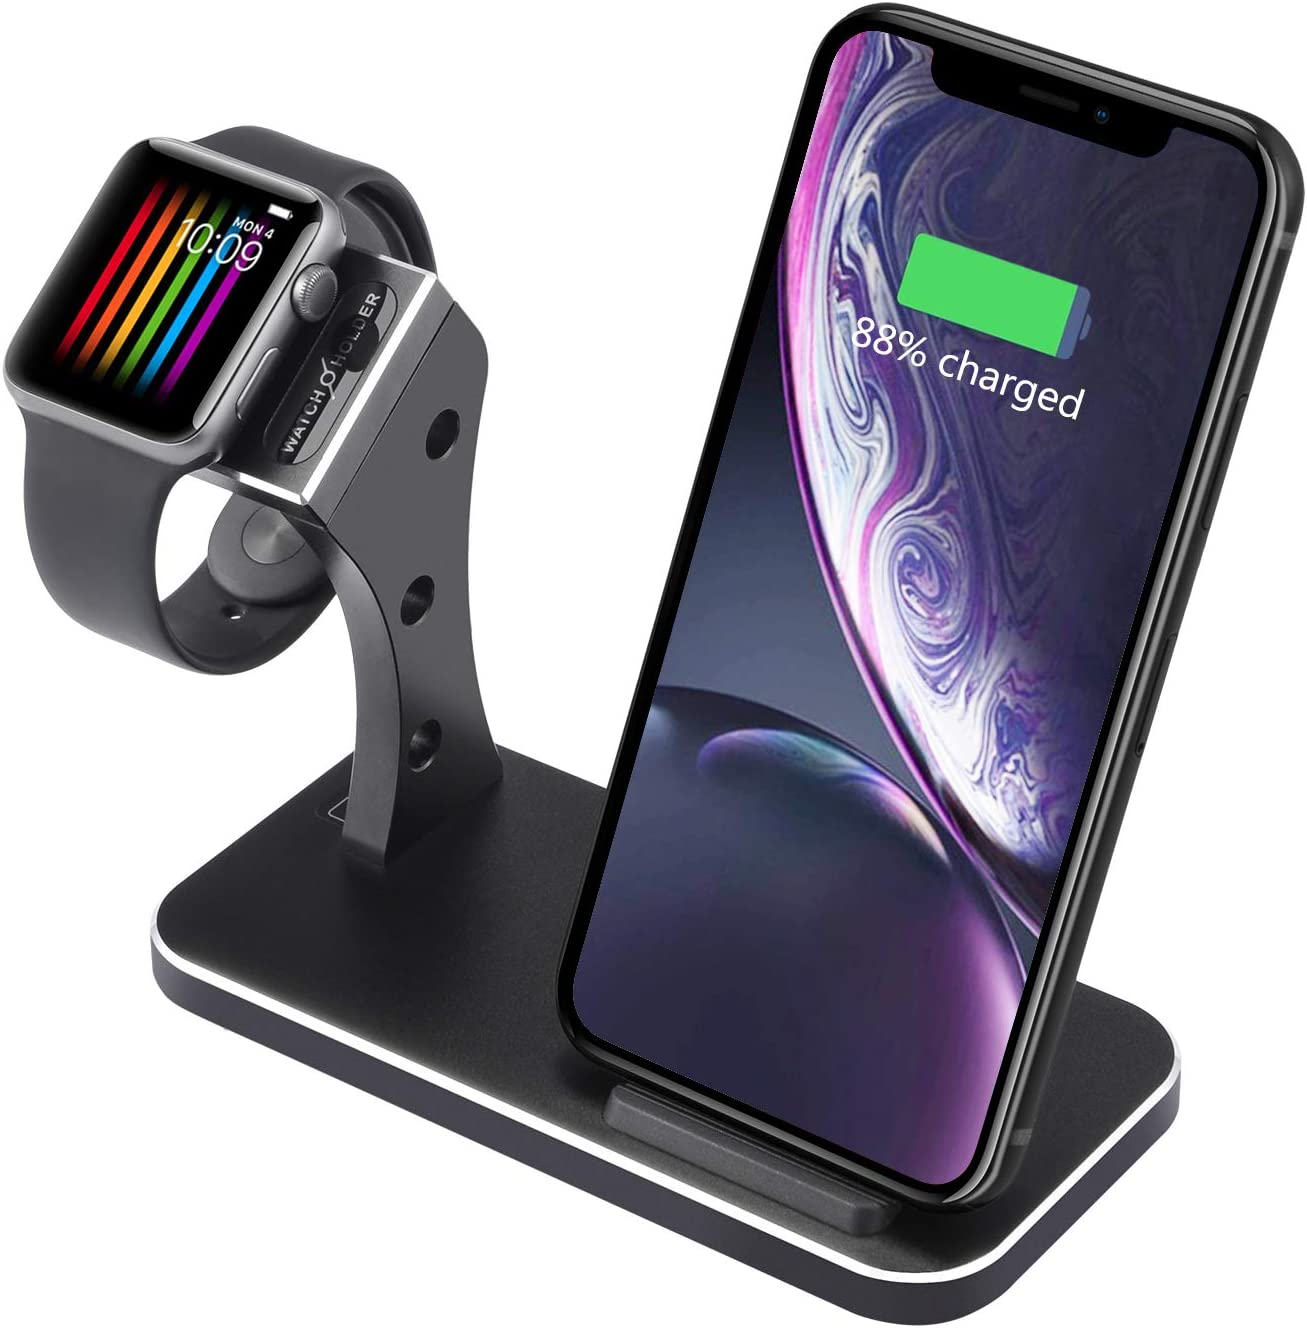 2 in 1 Aluminum Alloy Wireless Charger Stand for iPhone and iWatch,Charging Station Compatible with Apple Watch Series 4/3/2/1 & iPhone Xs Max/XS/XR/X/8/8 Plus (No AC Adapter)